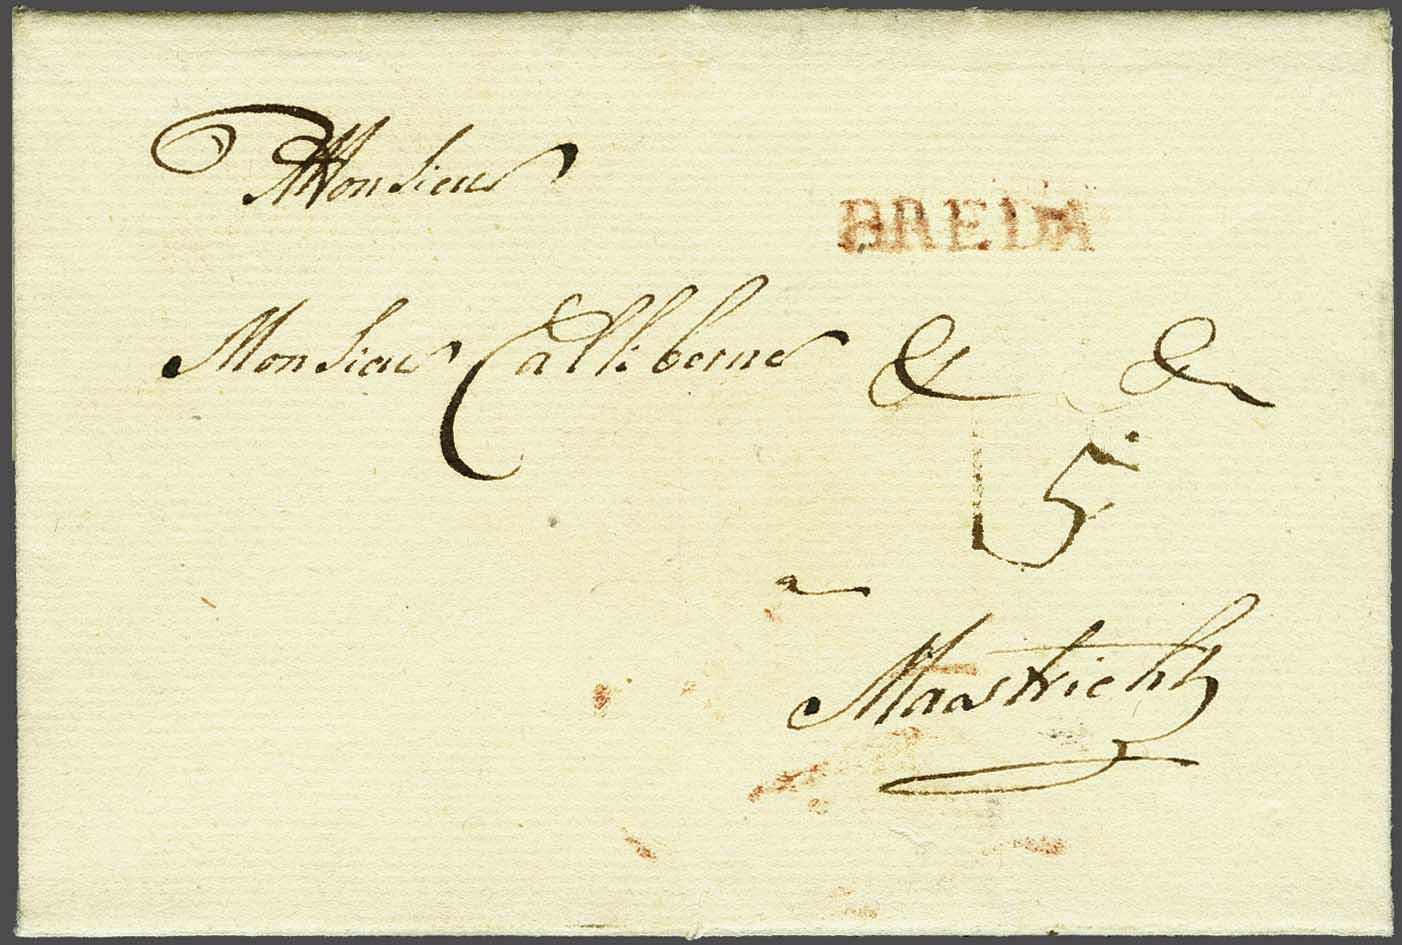 Lot 1702 - Netherlands and former colonies Netherlands -  Corinphila Veilingen Auction 245-246 Day 3 - Netherlands and former colonies - Single lots, Collections and lots, Boxes and literature